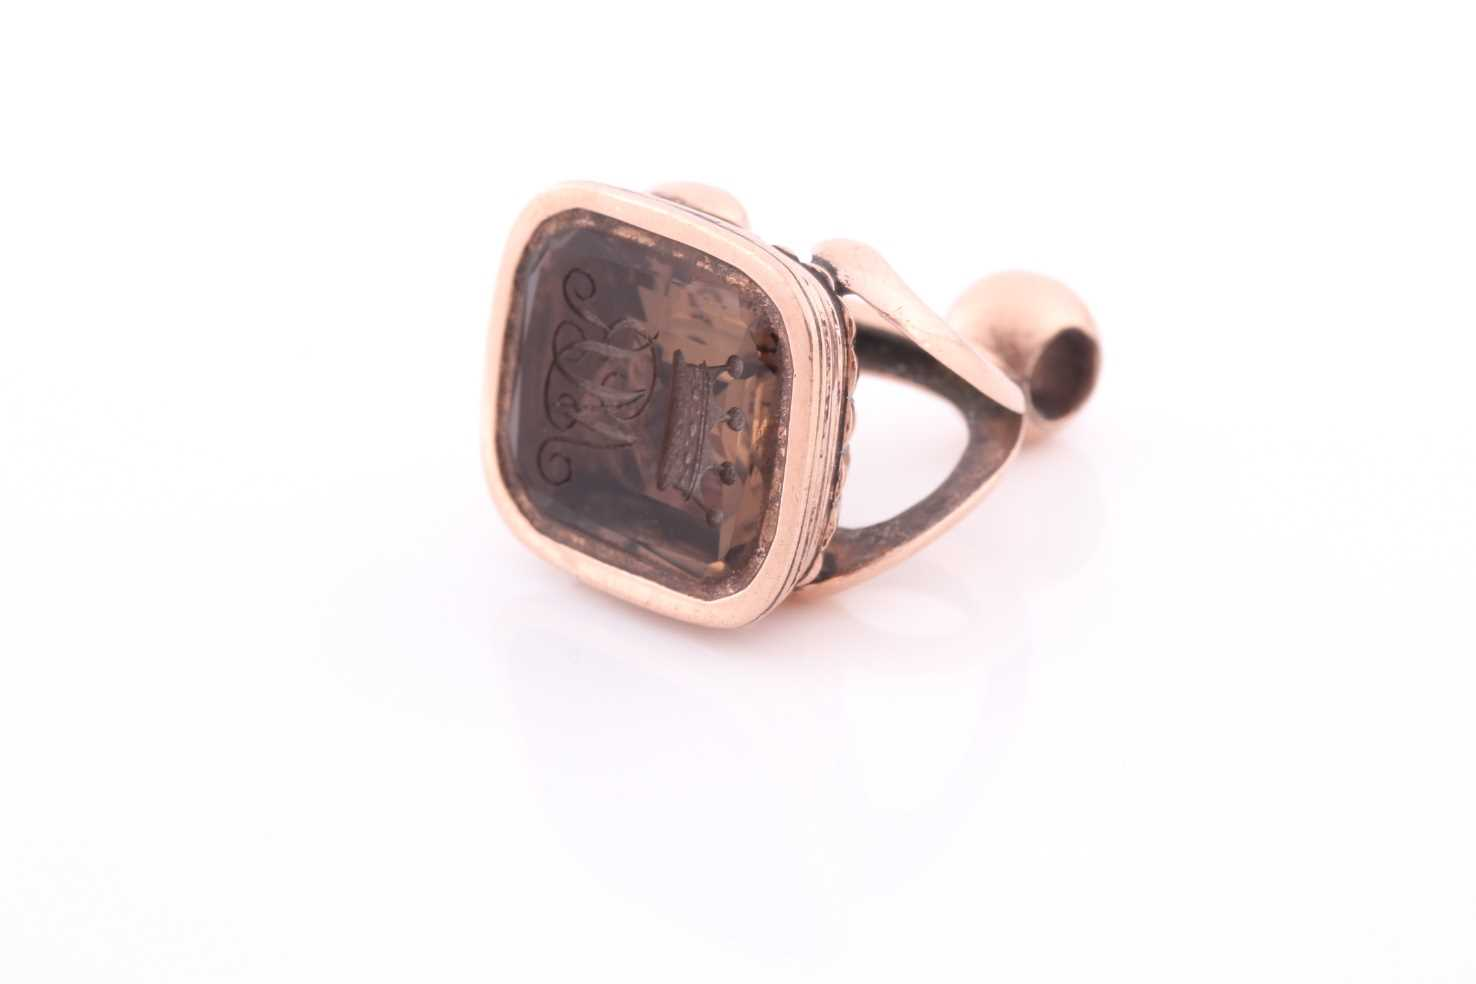 A yellow metal and quartz fob pendant, intaglio engraved with initials MR, unmarked (tests as rose